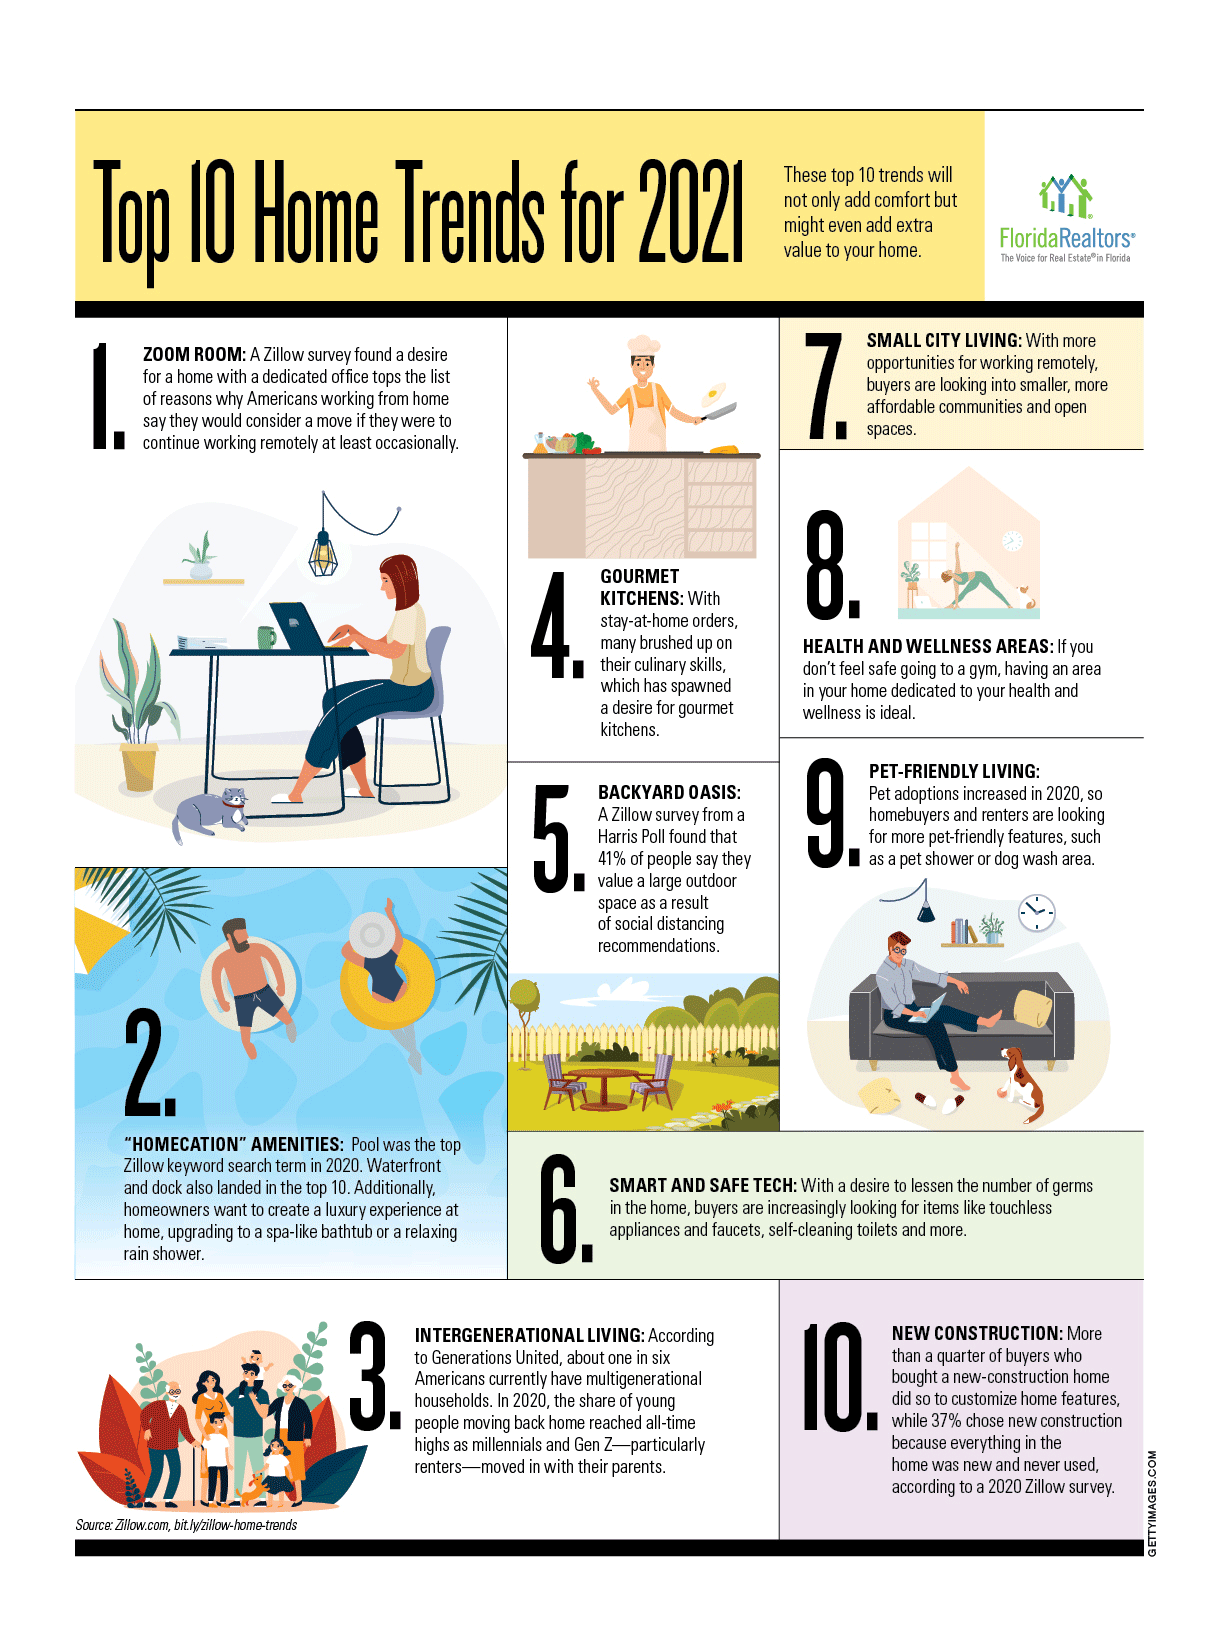 Top 10 Home Trends for 2021